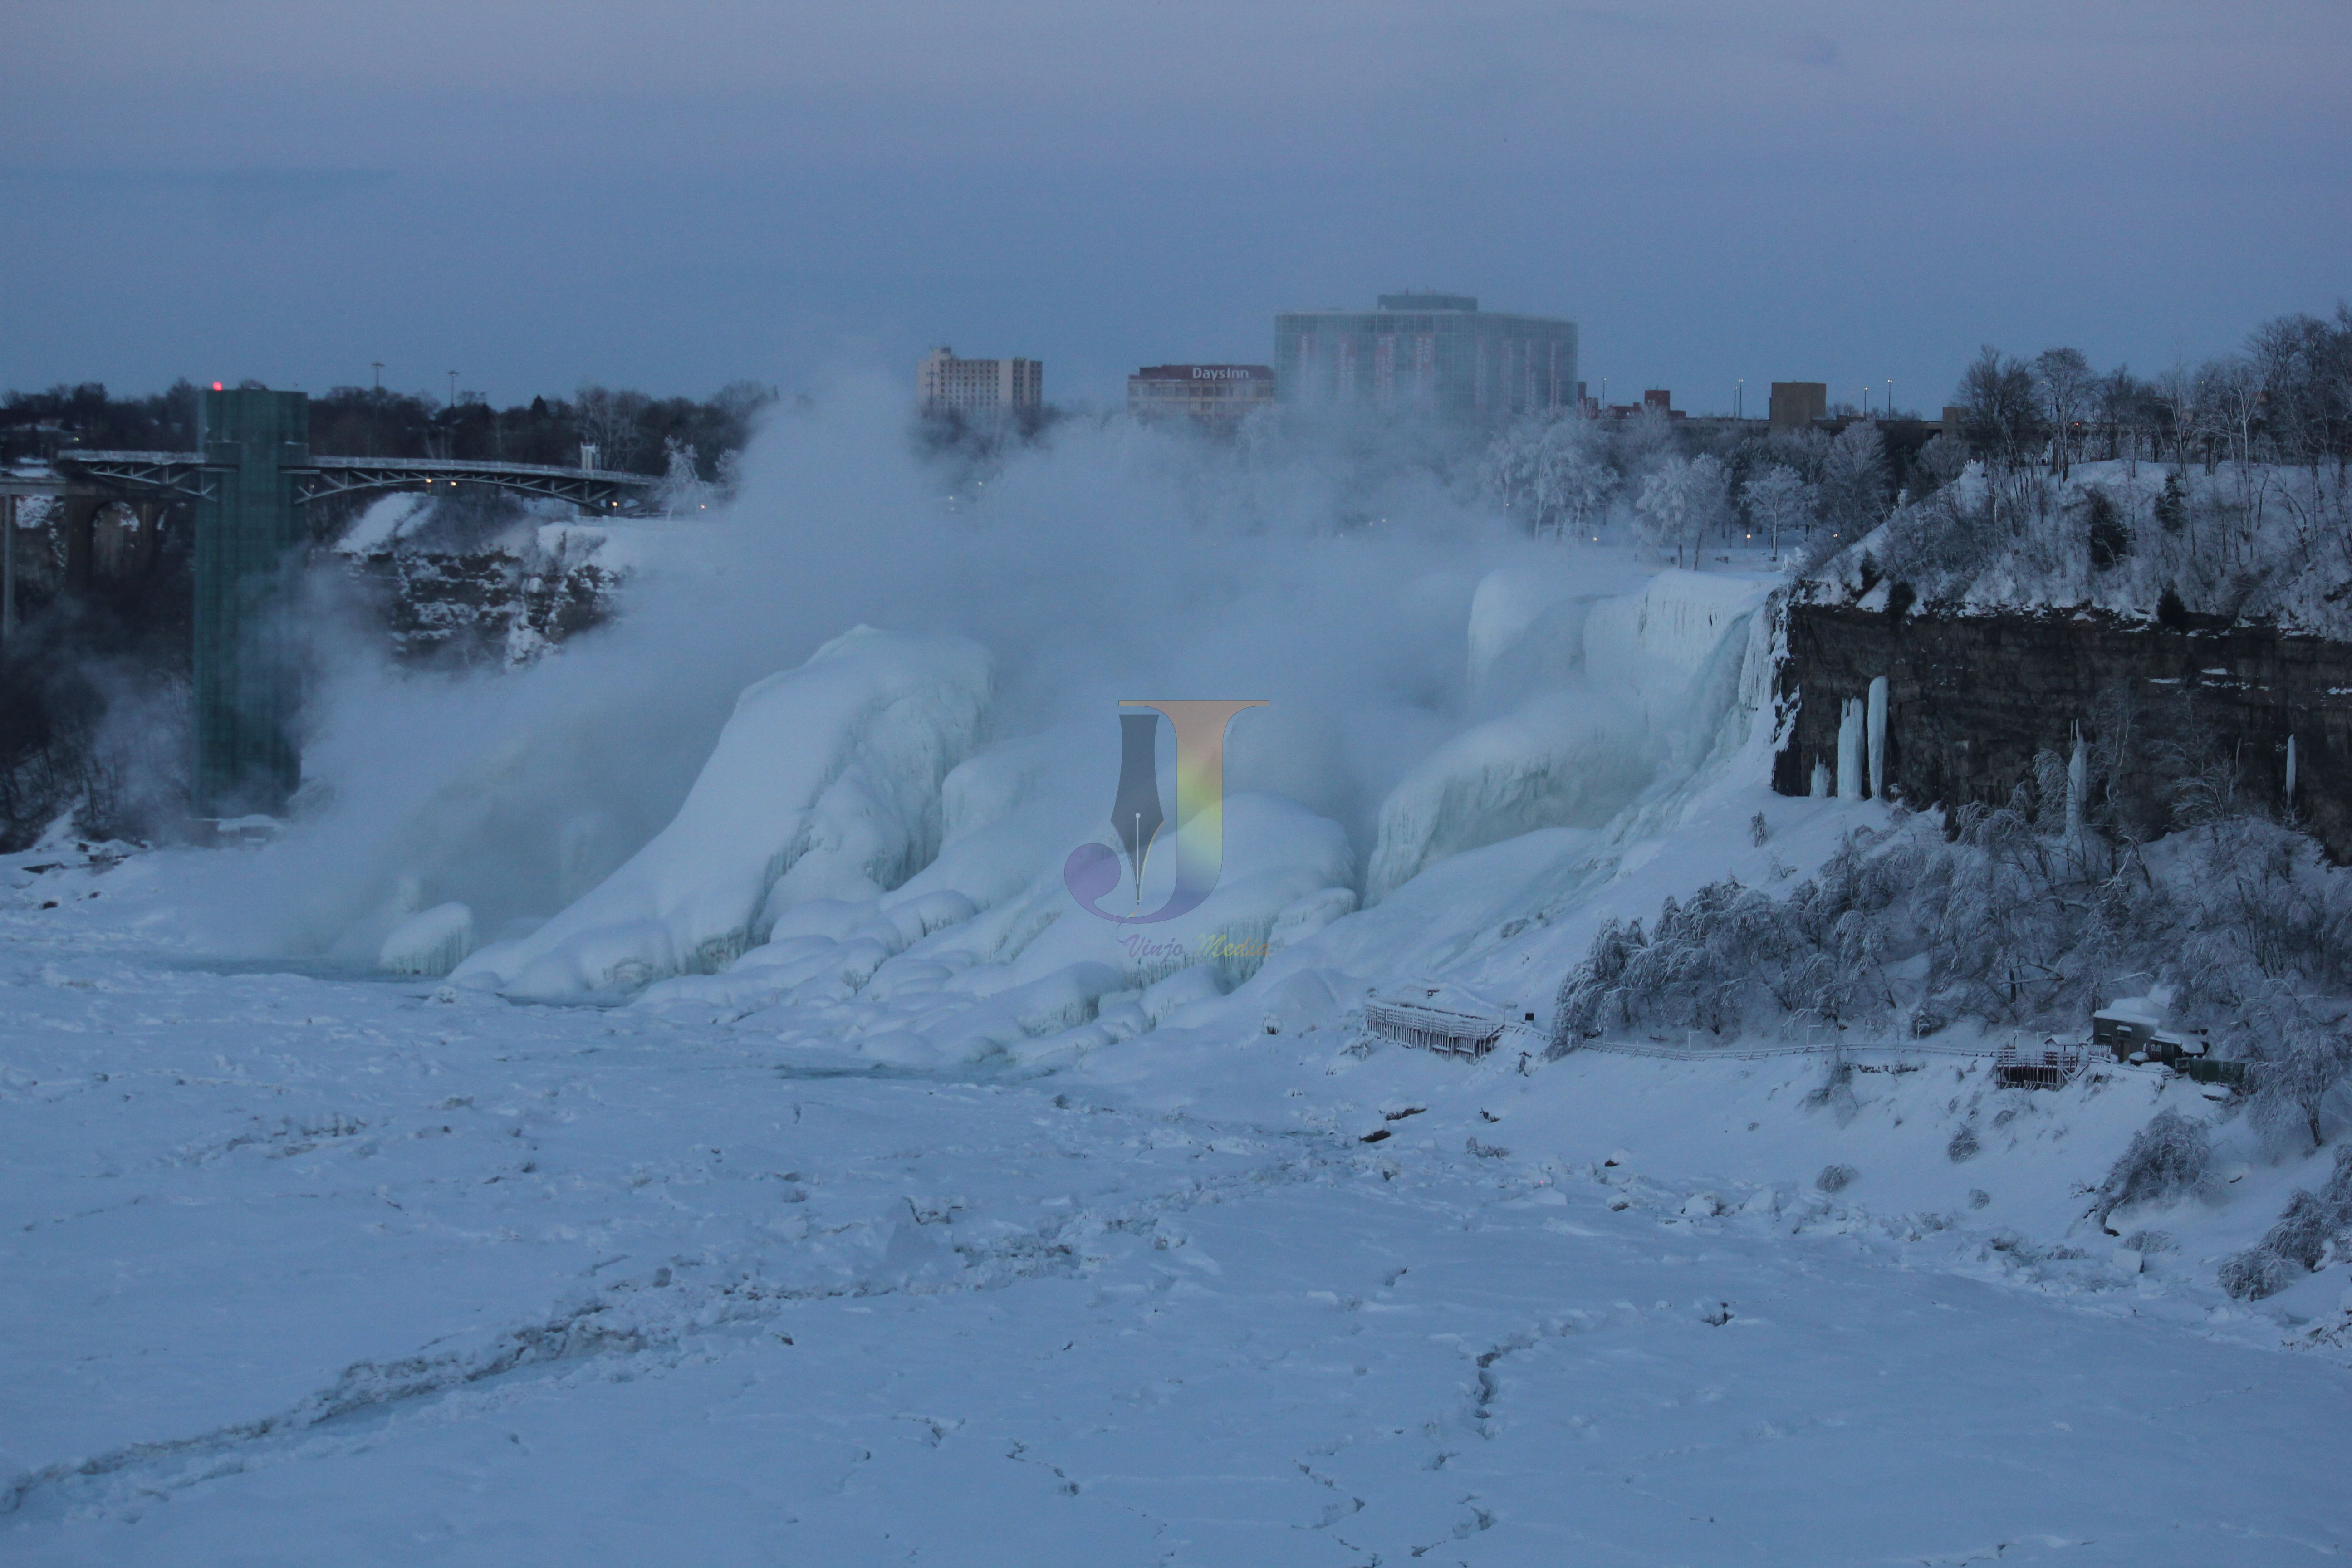 Frozen waterfalls of the US side at Niagara. Usually the boat ride at Niagara goes through this area which is literally frozen now! Picture by Vinod John (www.vinjomedia.com)